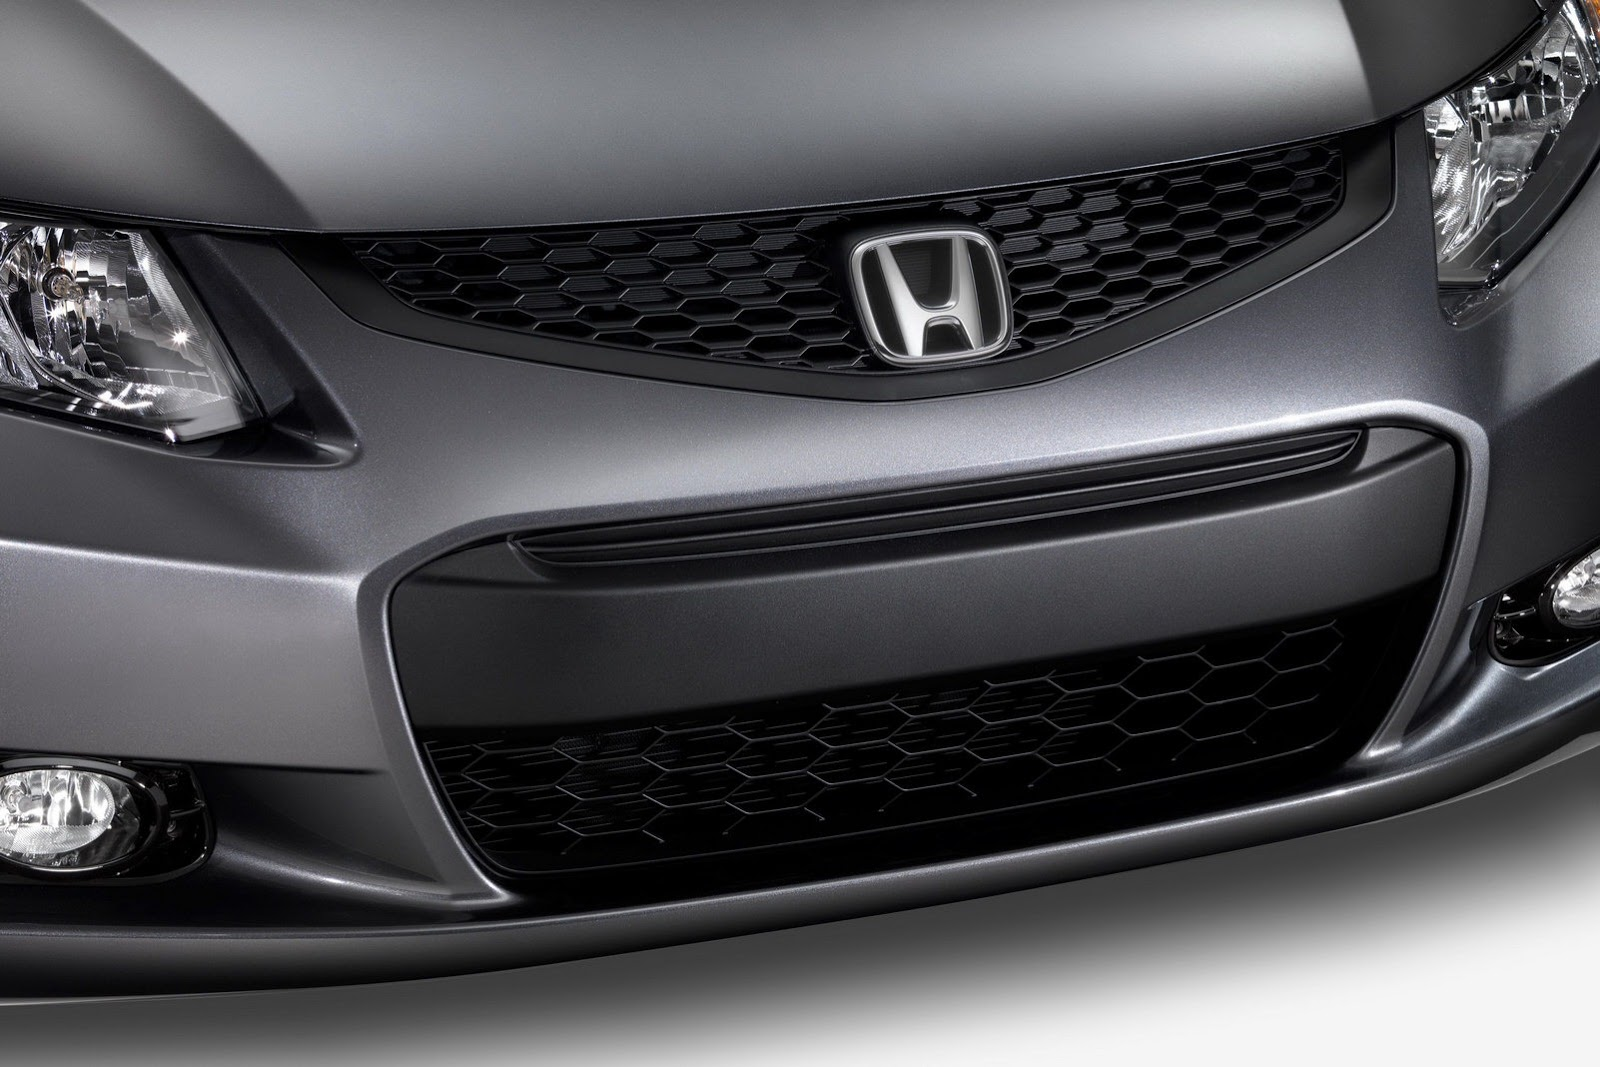 Honda Refreshes Civic For With New Grille And Added Kit Photo Gallery